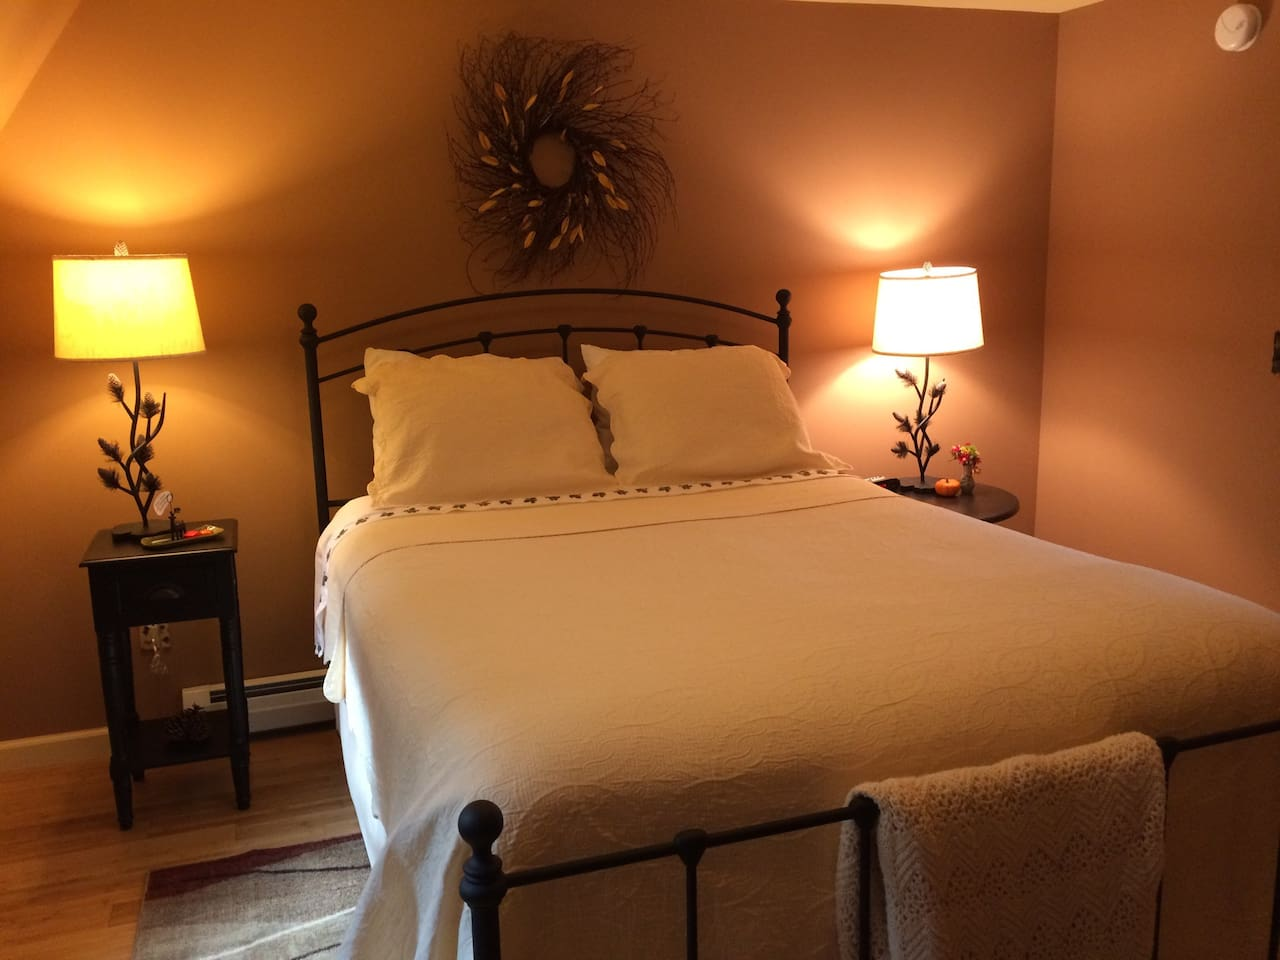 The Pinecone room has a comfy queen bed!